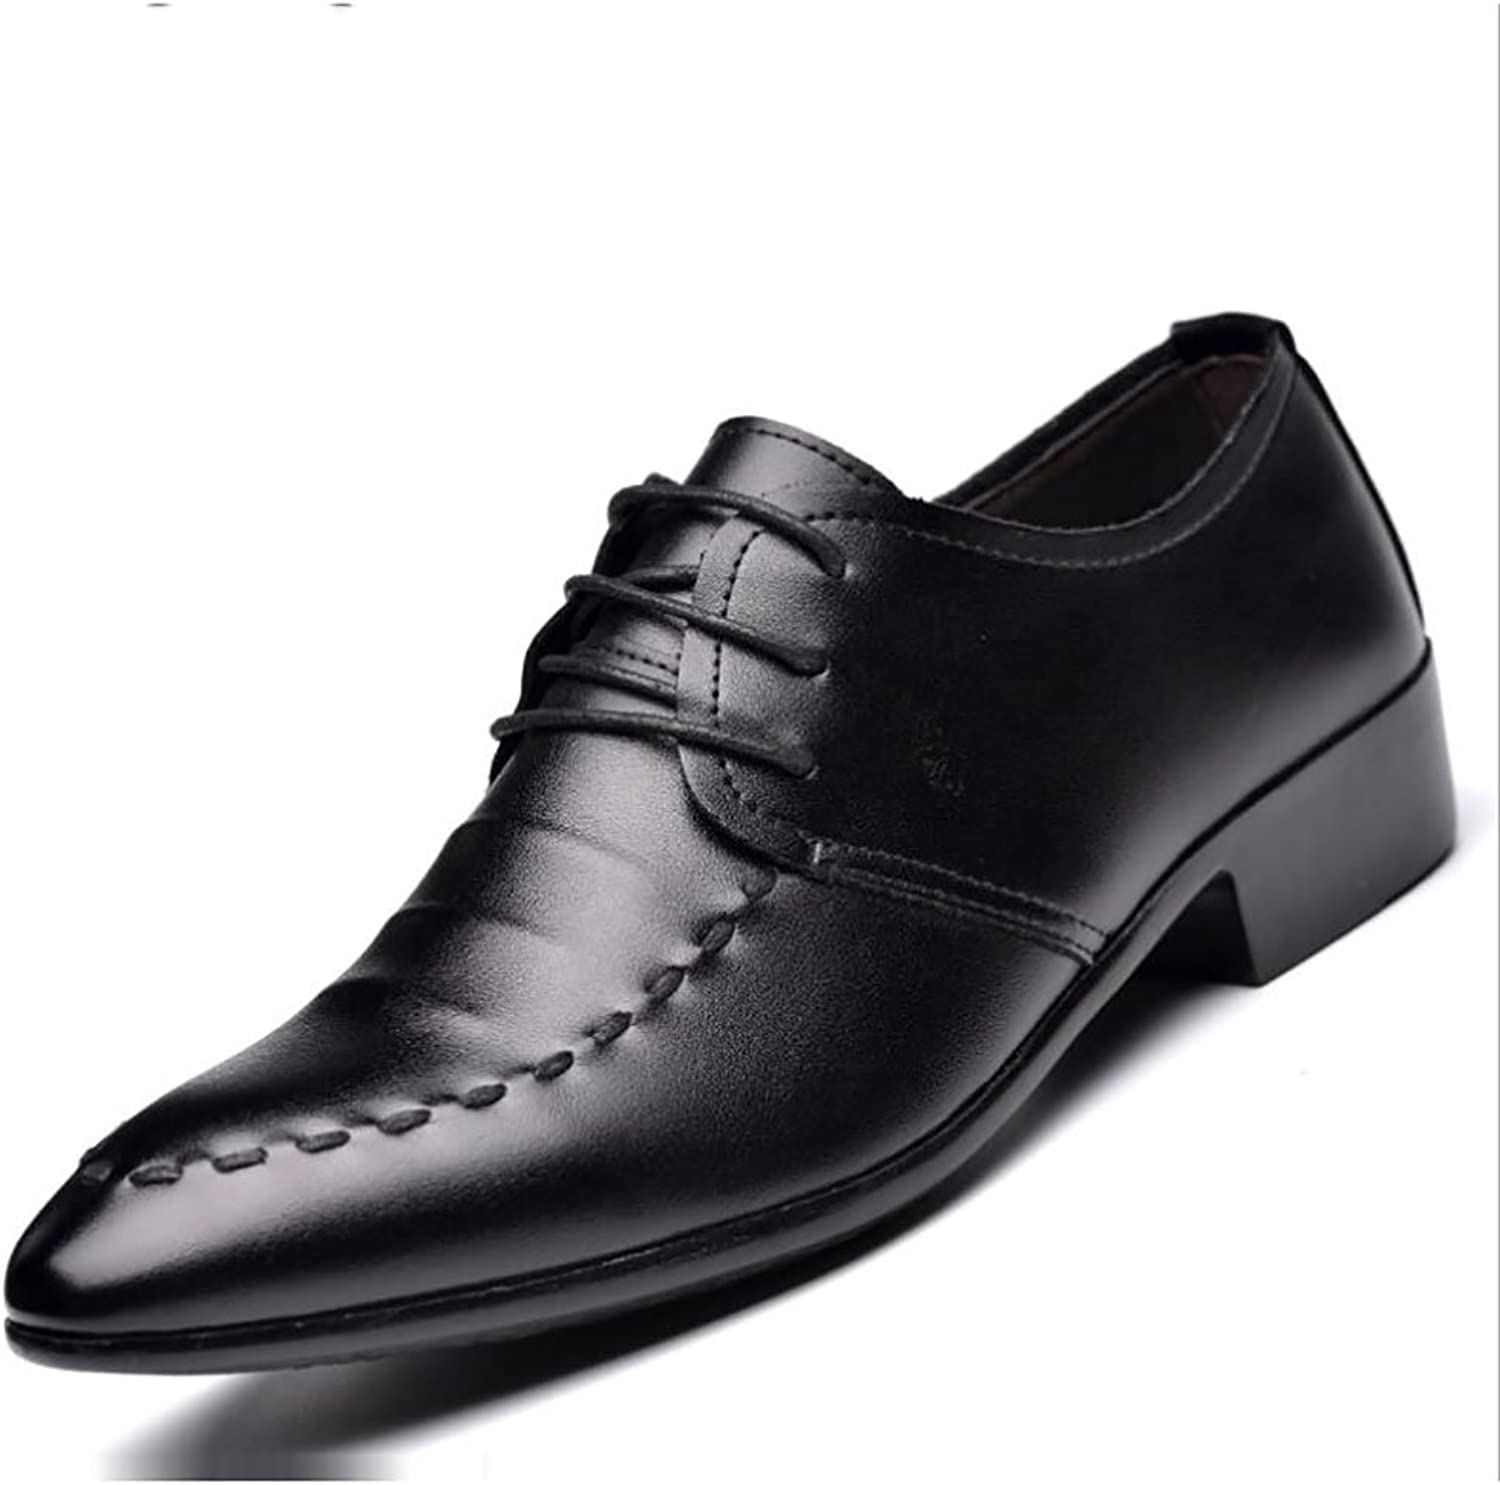 Gfp Men's Leather shoes Lace up Leather shoes Formal Business Work Comfy Moccasins Casual Men's shoes Pointed Lace-up shoes Wedding shoes